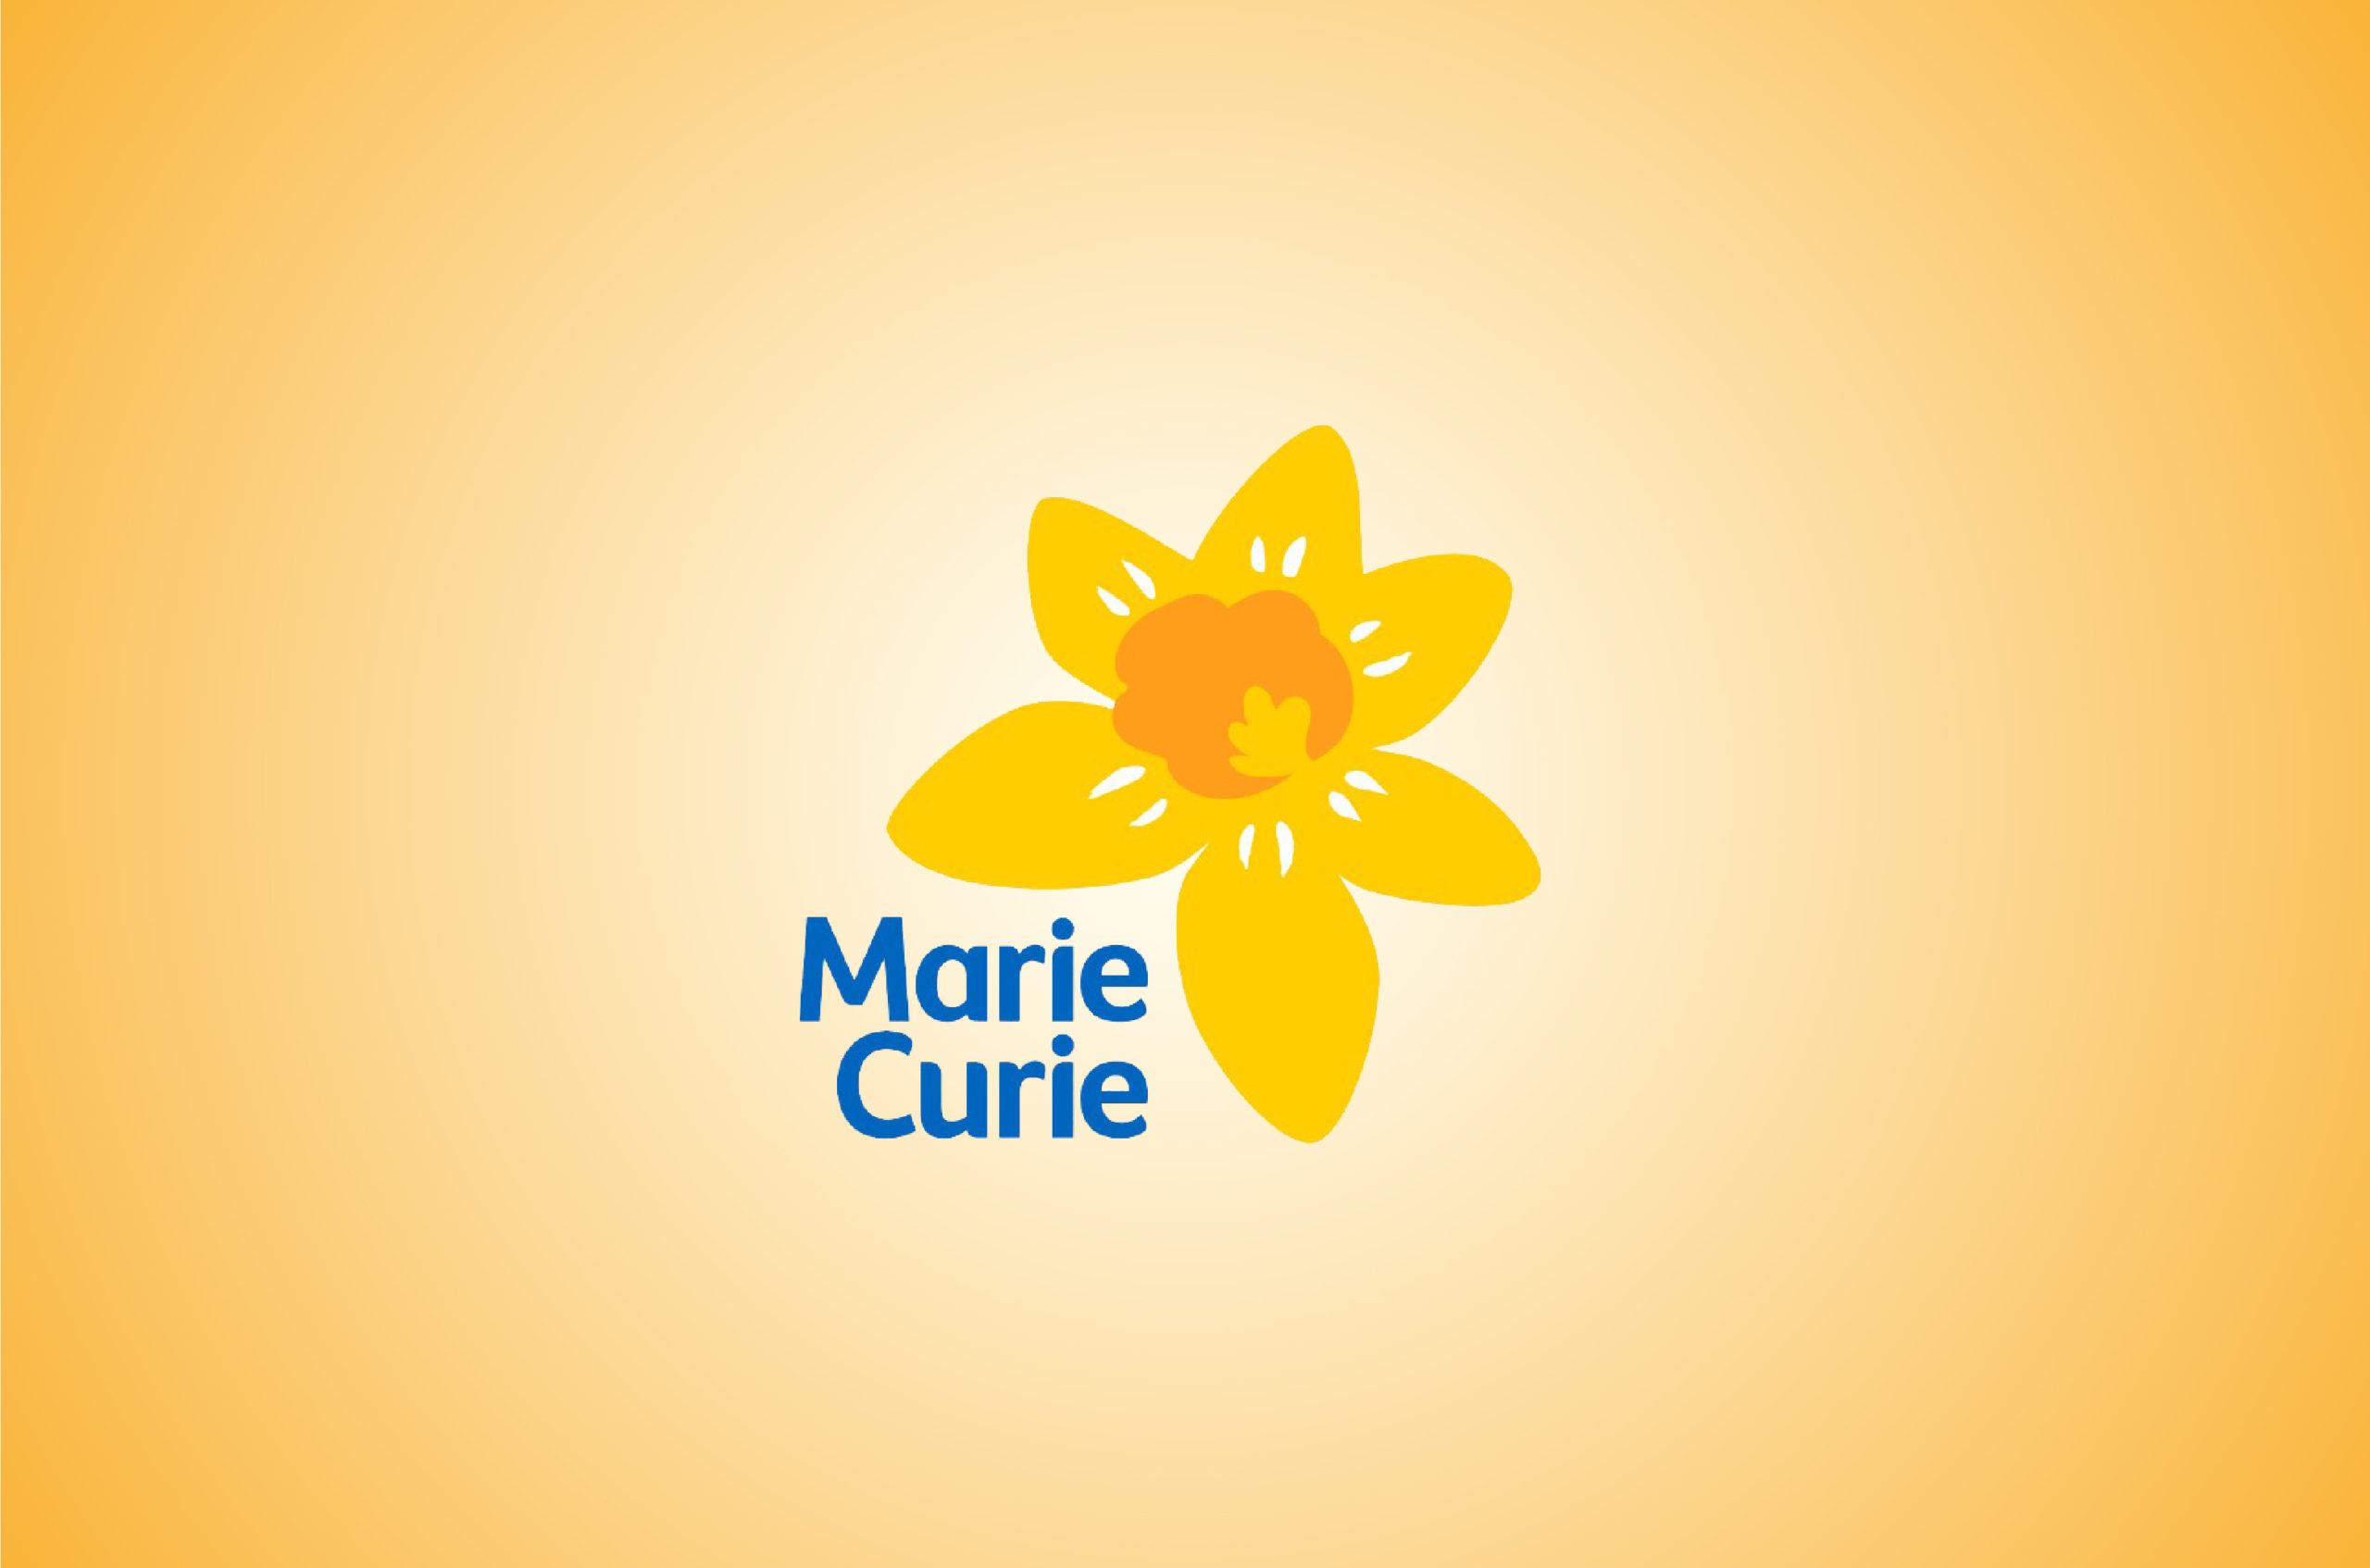 Logo for Marie Curie Hospital, Newcastle, featuring a yellow daffodil